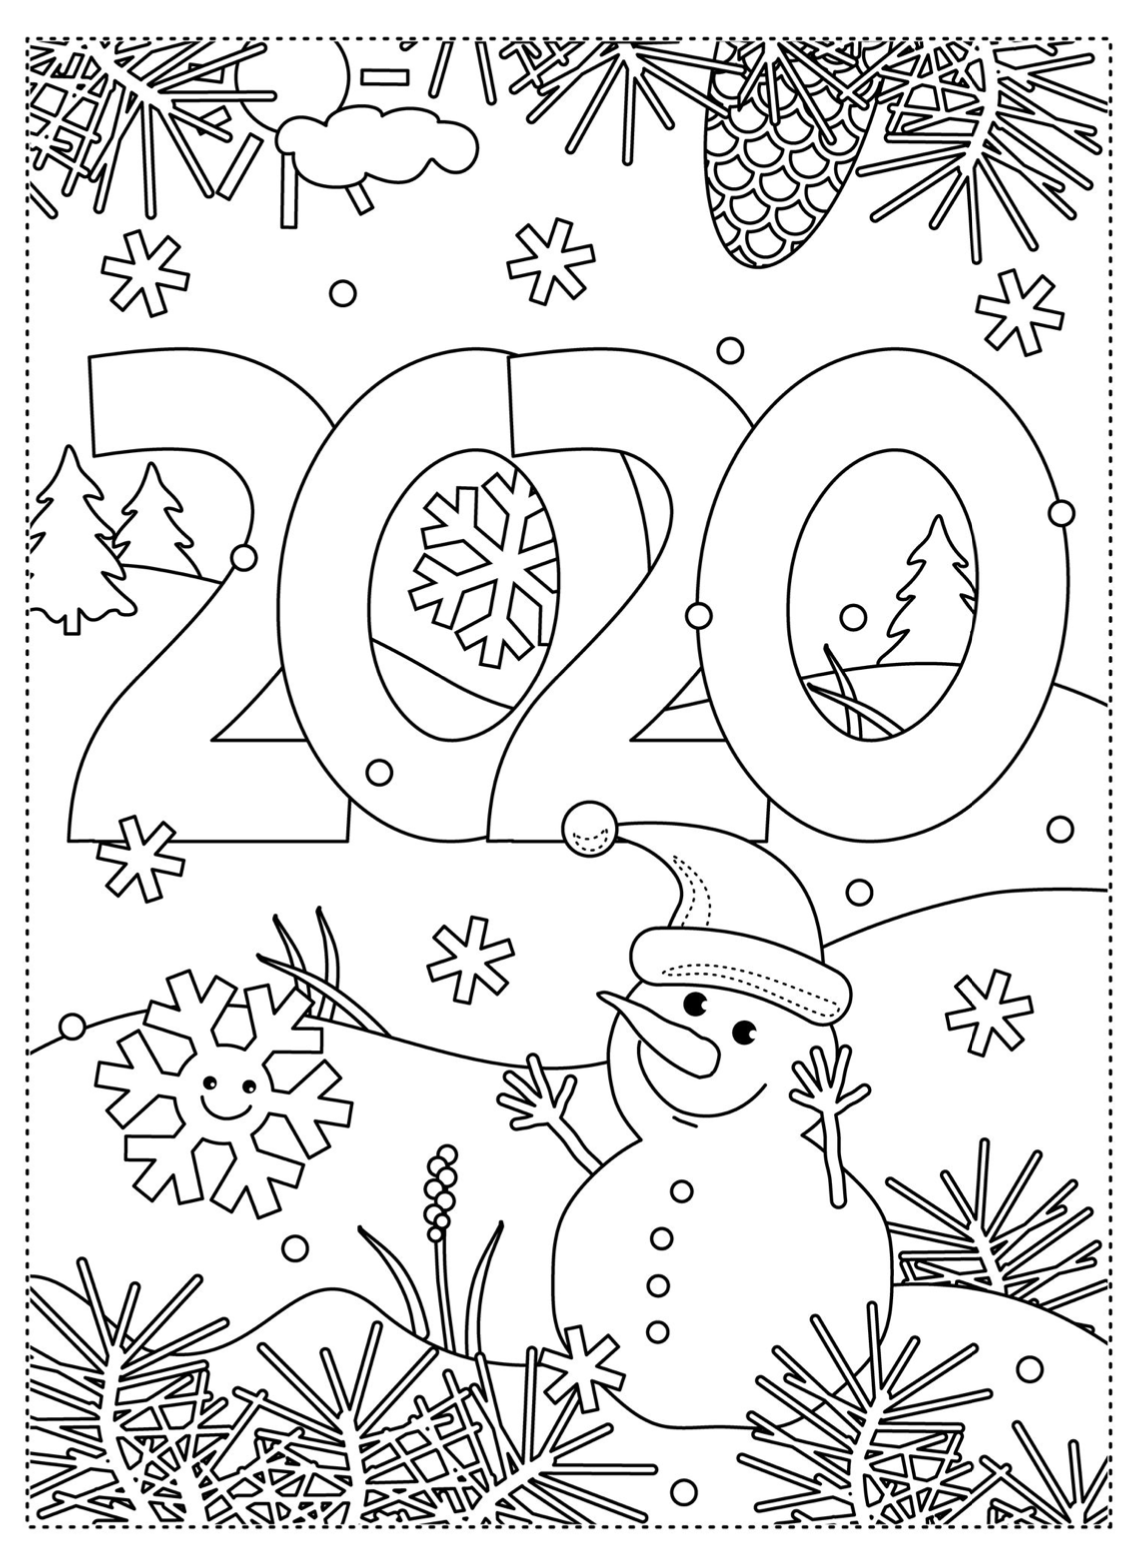 Kleurplaat 2020 2 Winter Crafts New Year Coloring Pages Unicorn Coloring Pages